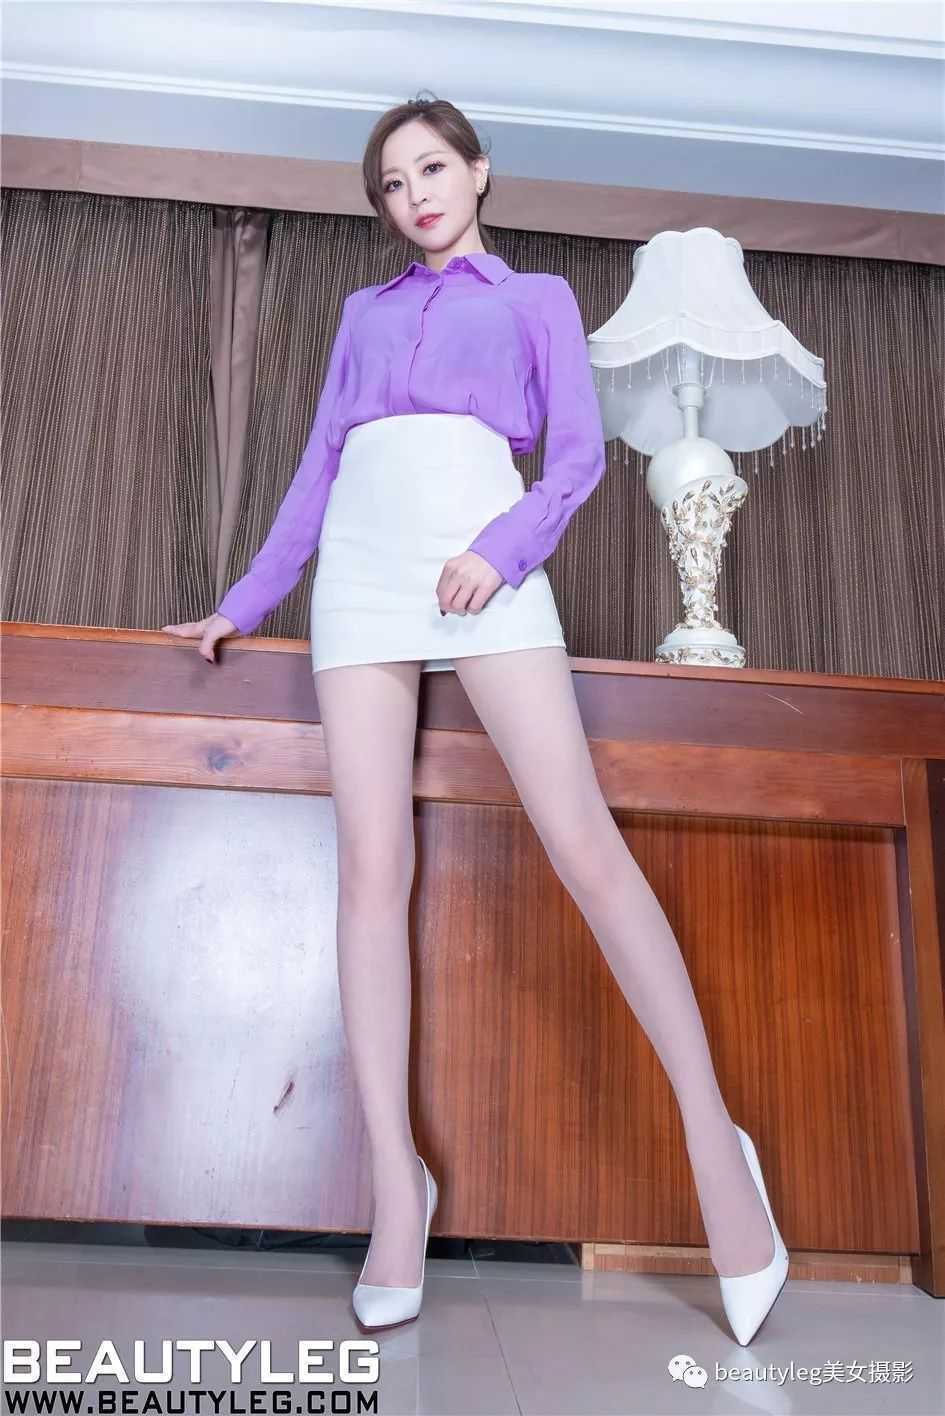 Beautyleg Lucy No.1706  No.1706Beautyleg 第7张